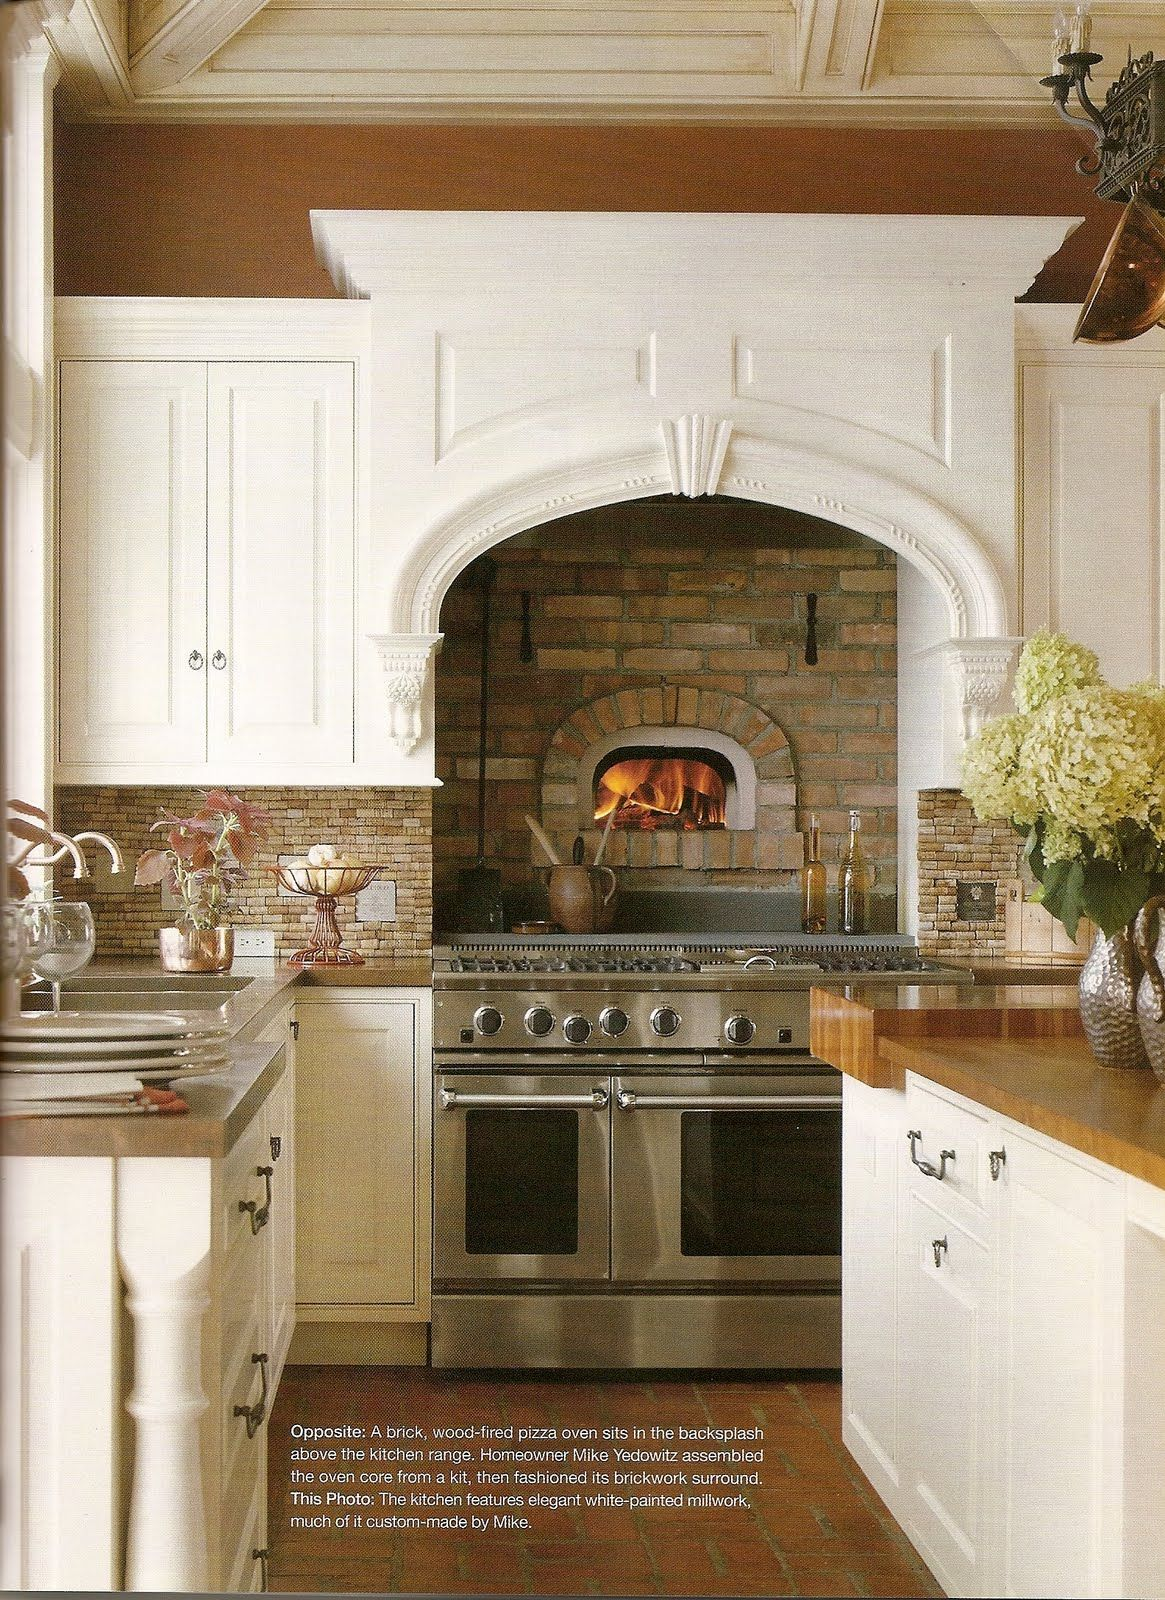 best images about pizza oven on pinterest stove hearth and